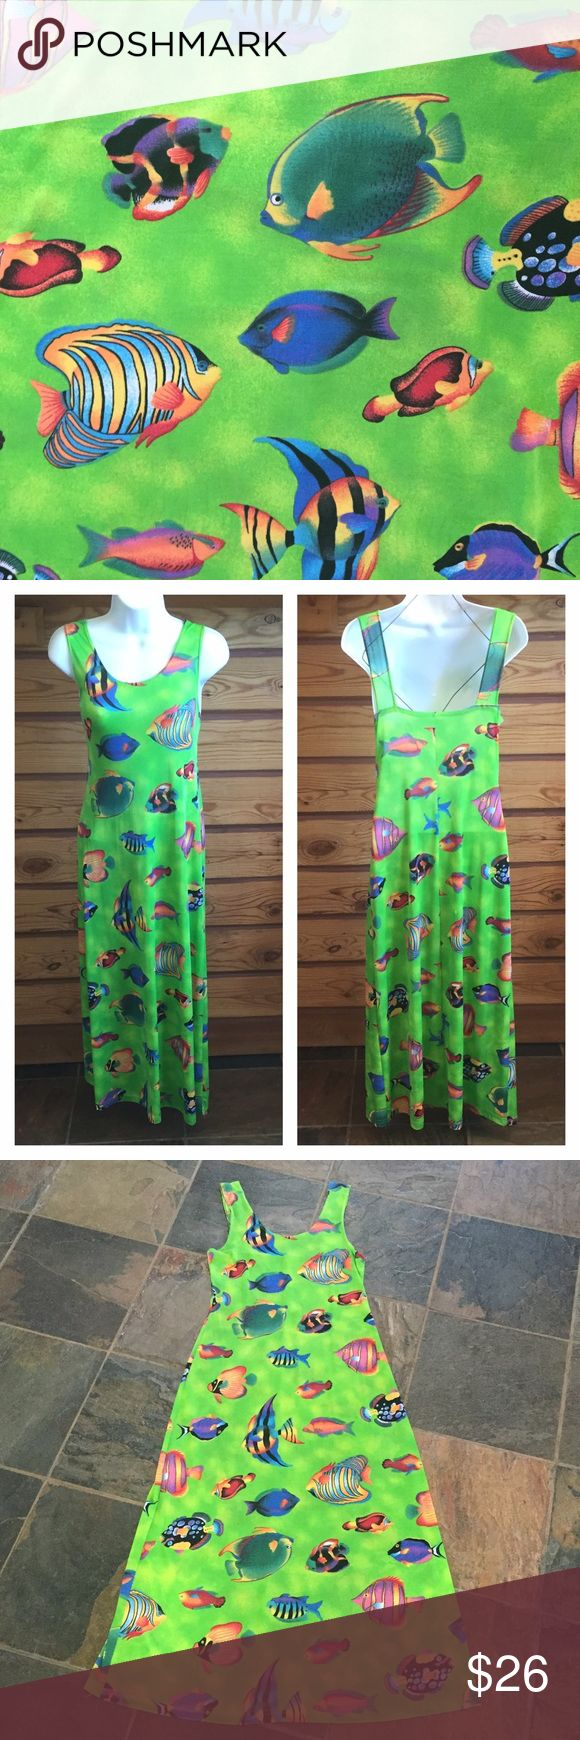 "Summer Tropical Fish Lime Green Slinky Maxi Dress Gorgeous, slinky, sexy, & fun!! Sleeveless maxi dress in electric lime green with an all-over print of tropical fish. Slinky & clingy fabric shows off your curves. Made by Coco's Family. 90% Polyester & 10% Lycra. Size Medium. Dress is 49"" long. Cocos Family Dresses Maxi"